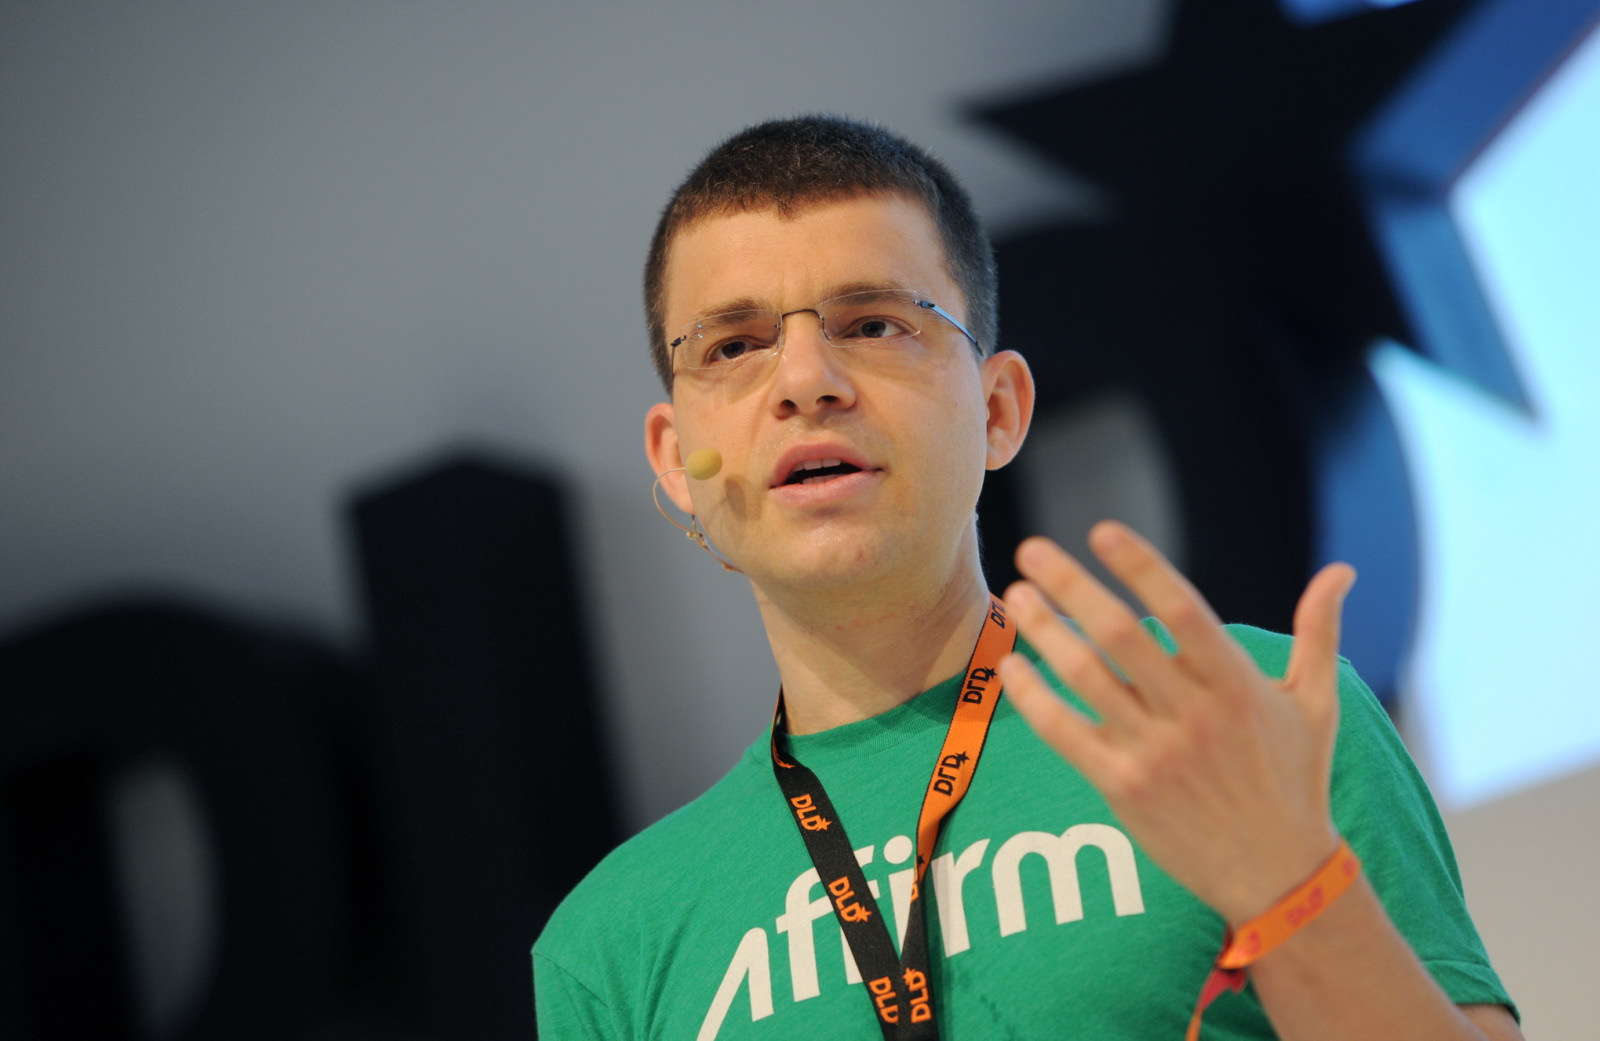 Max Levchin (HVF) speaks on the podium during the Digital Life Design (DLD) Conference at the HVB Forum on January 20, 2014 in Munich, Germany.  (Free Press Photo © Hubert Burda Media / Picture Alliance)